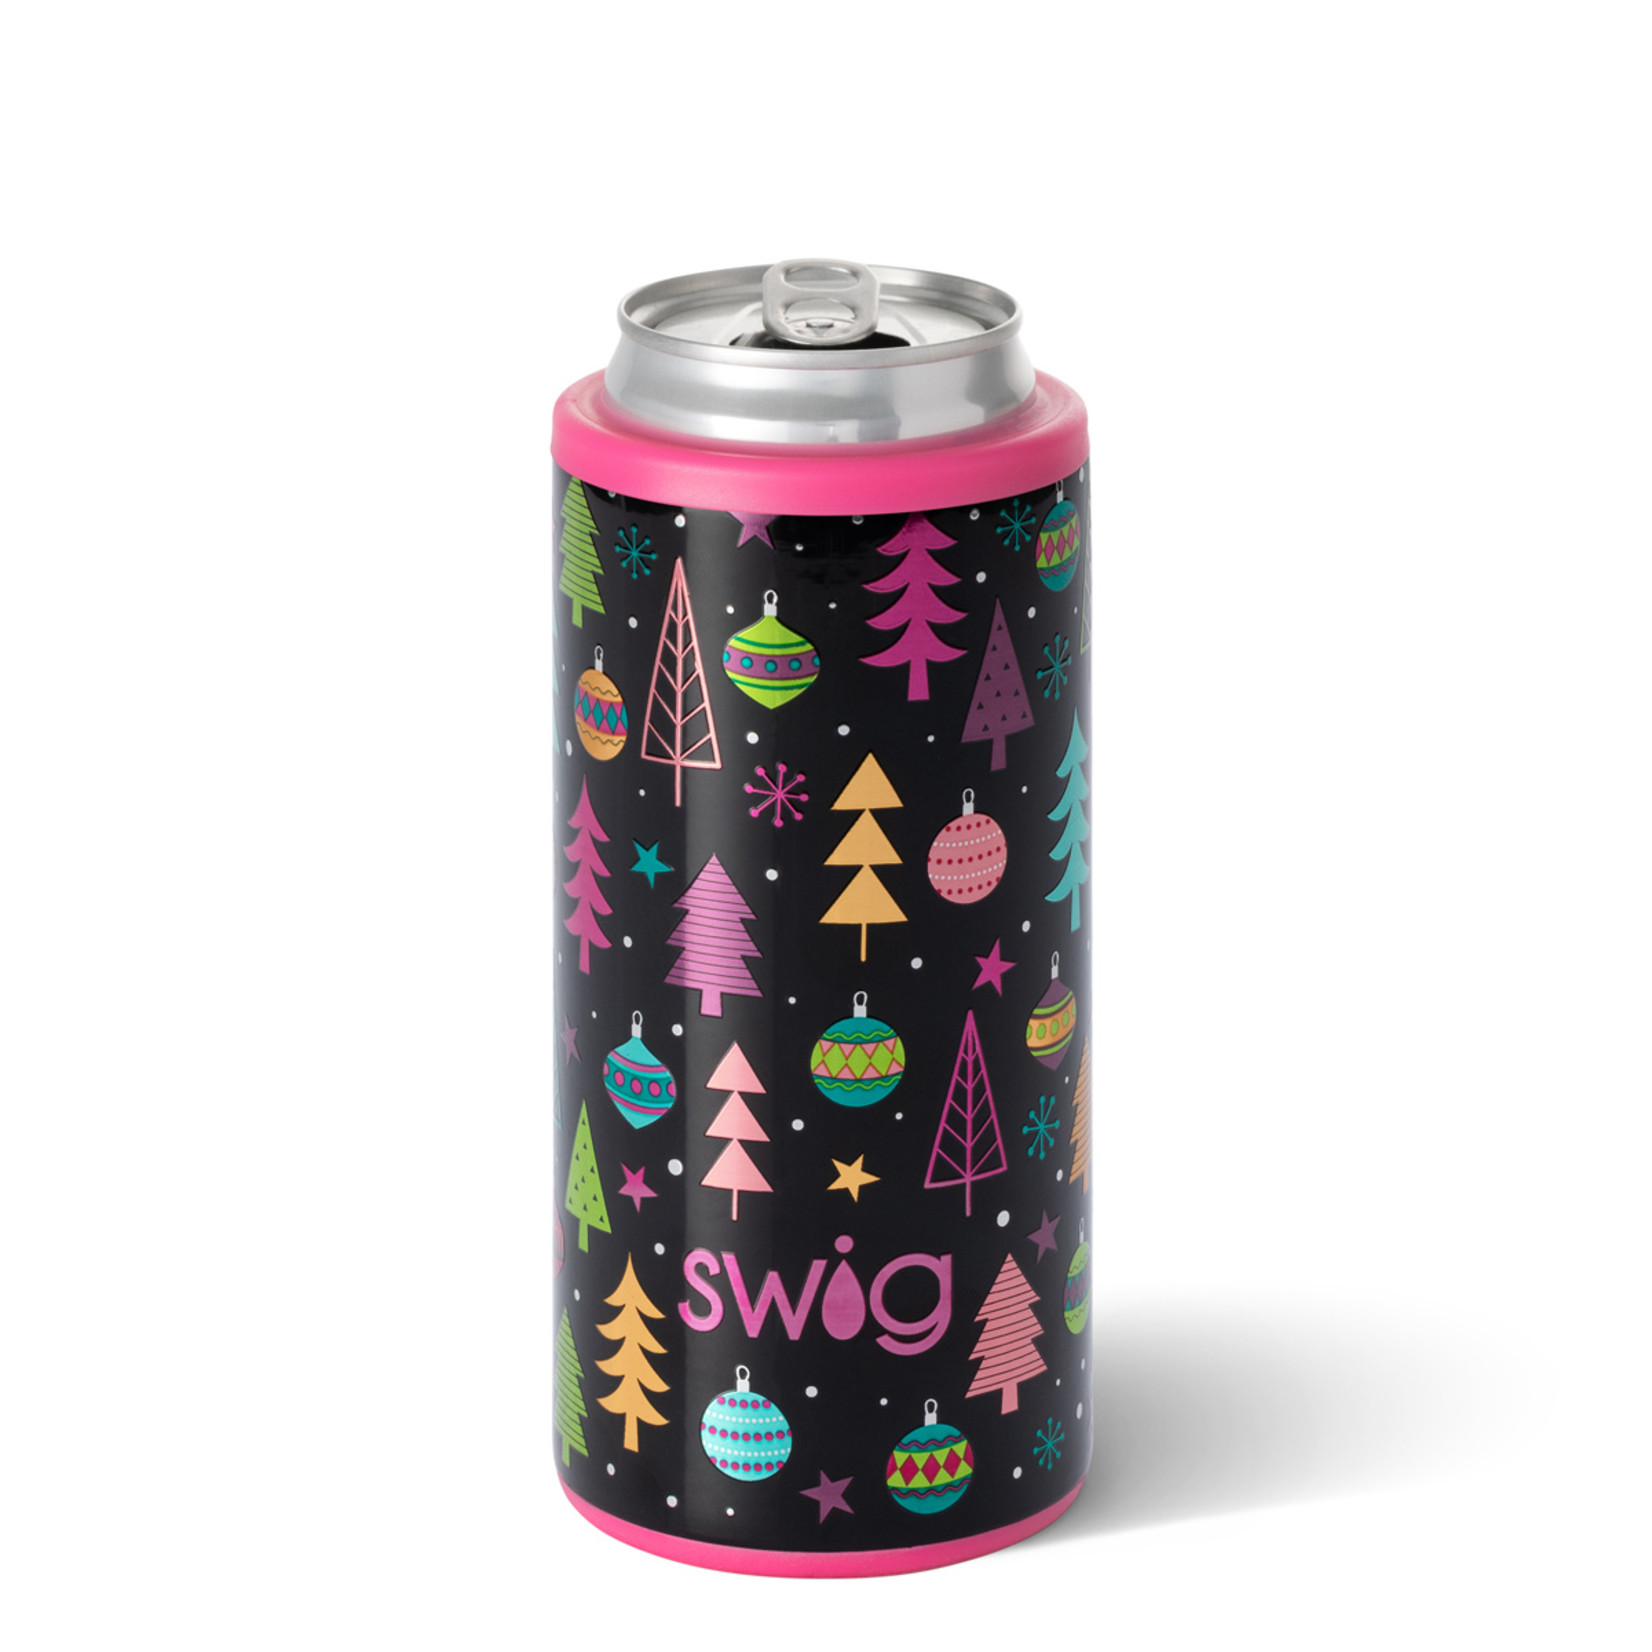 Swig Merry & Bright Skinny Can Cooler 12 oz